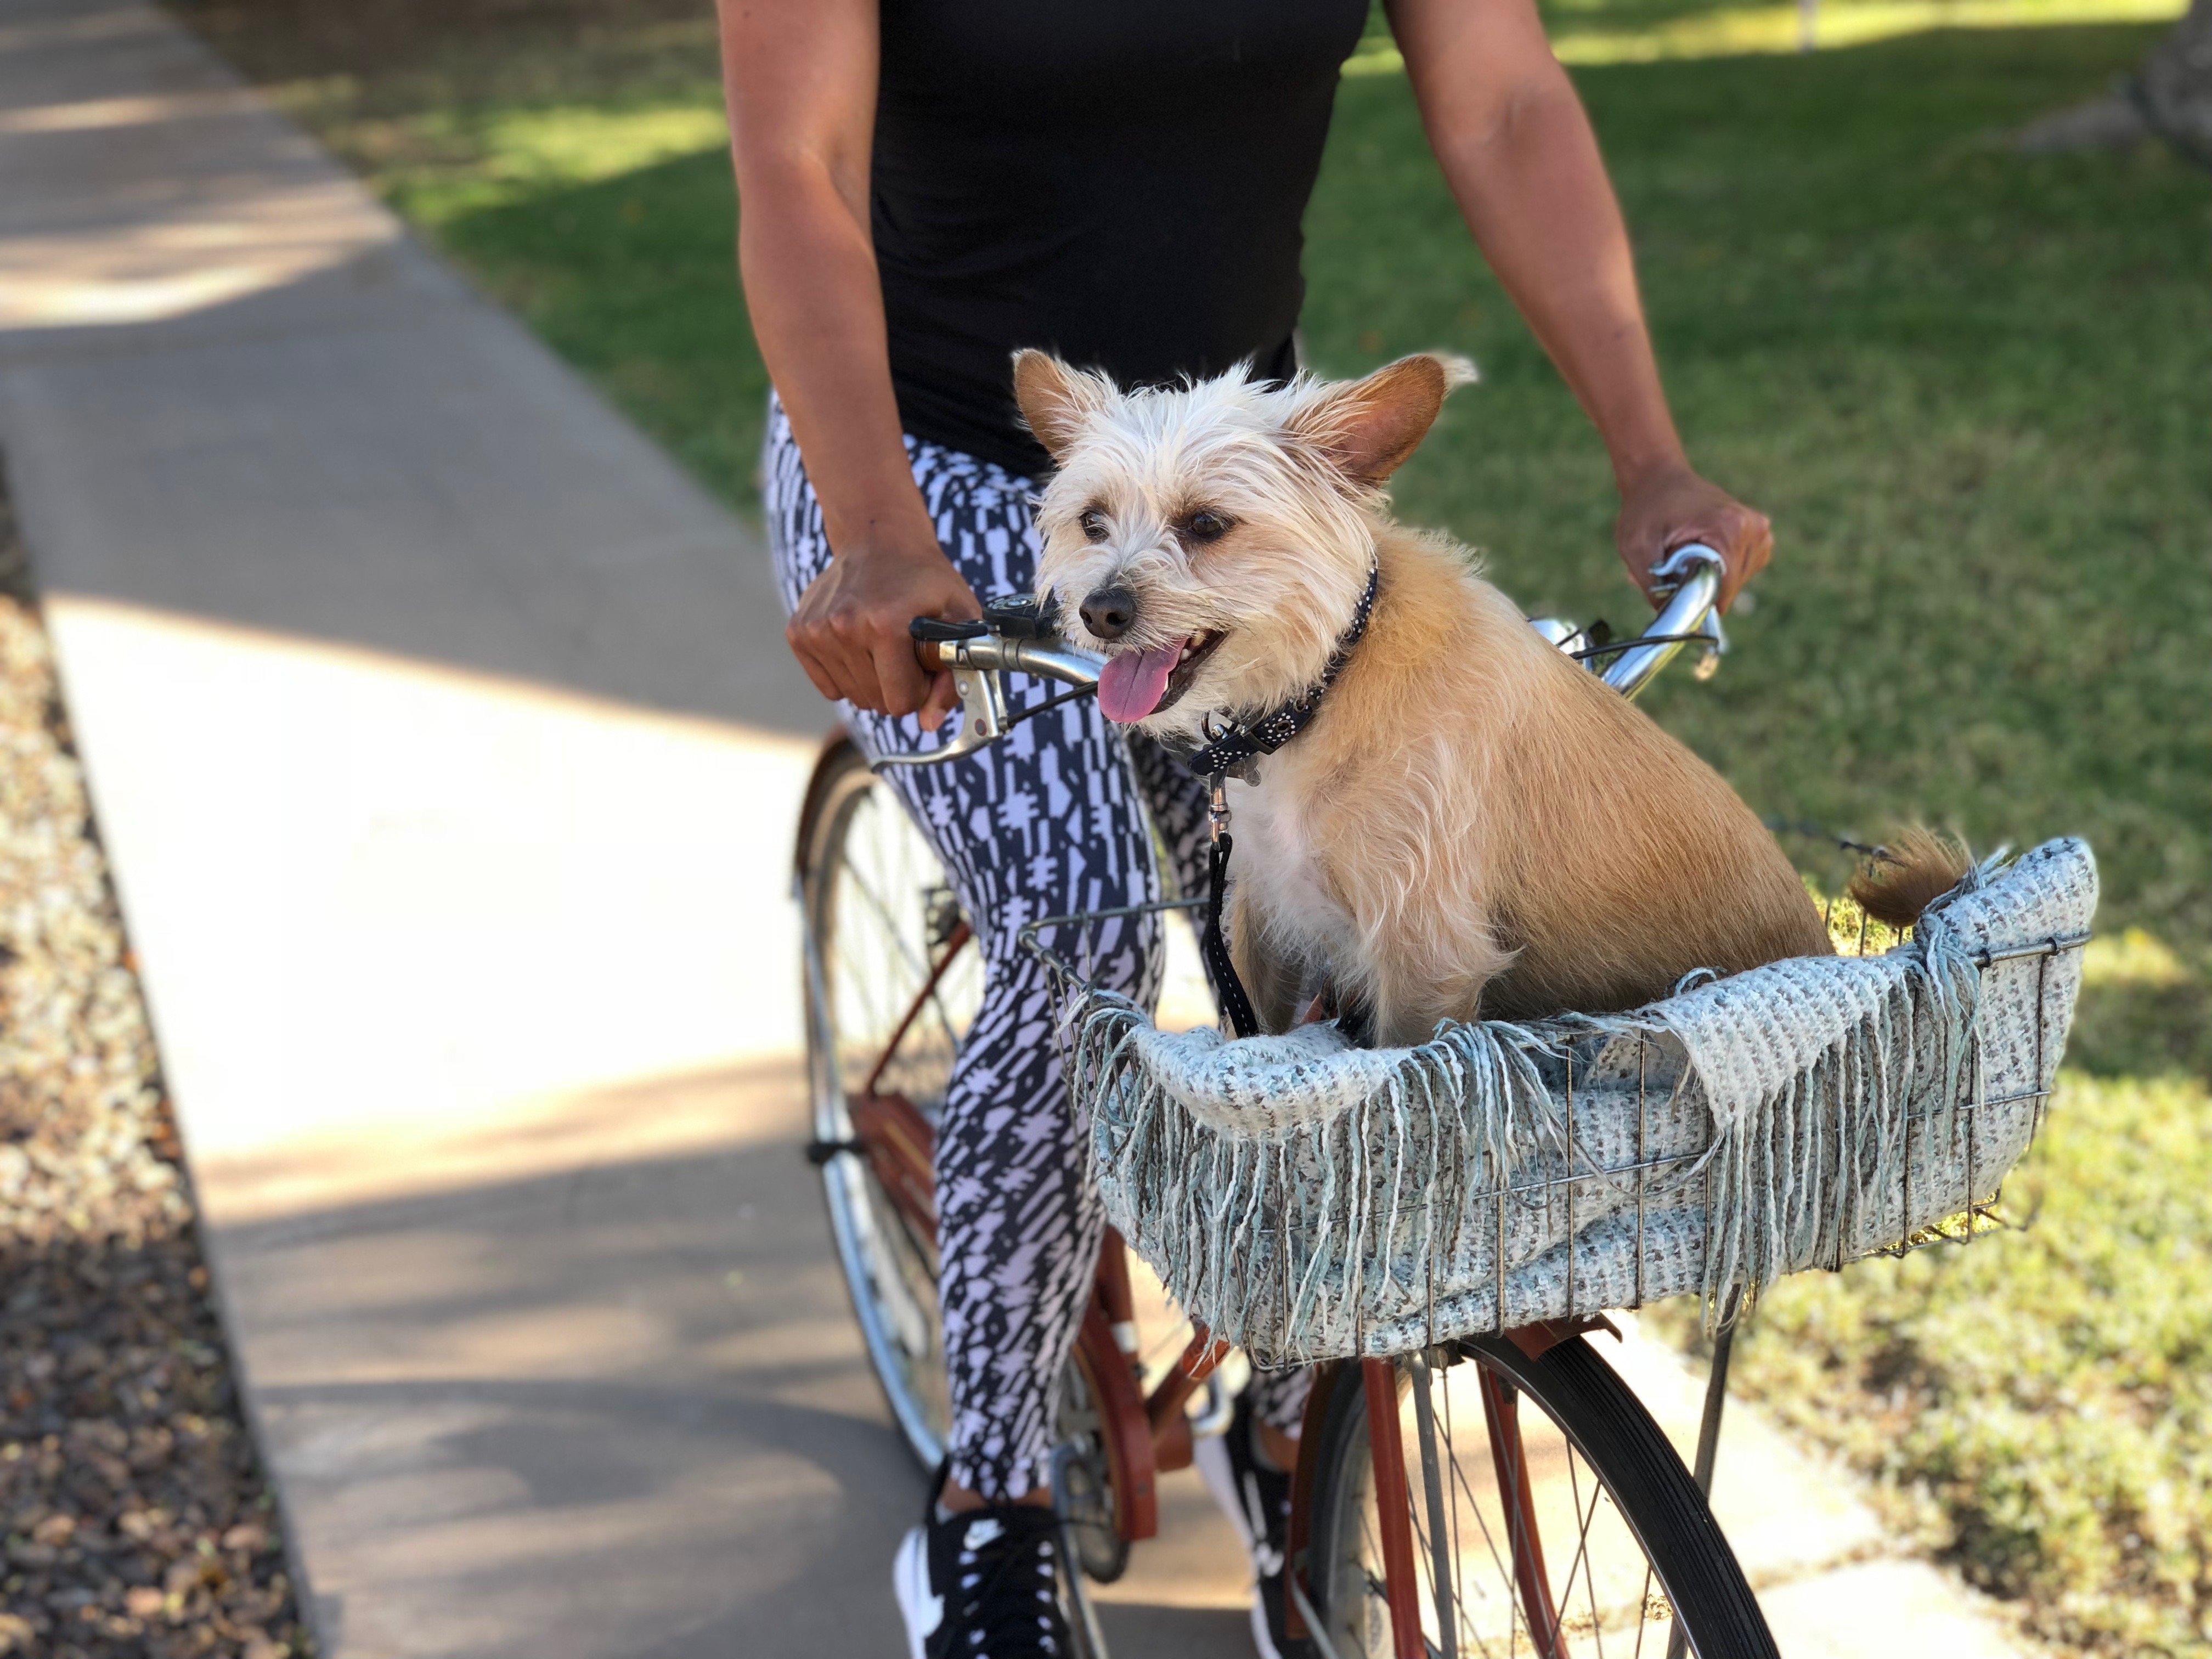 A small dog rides happily in a bike basket.